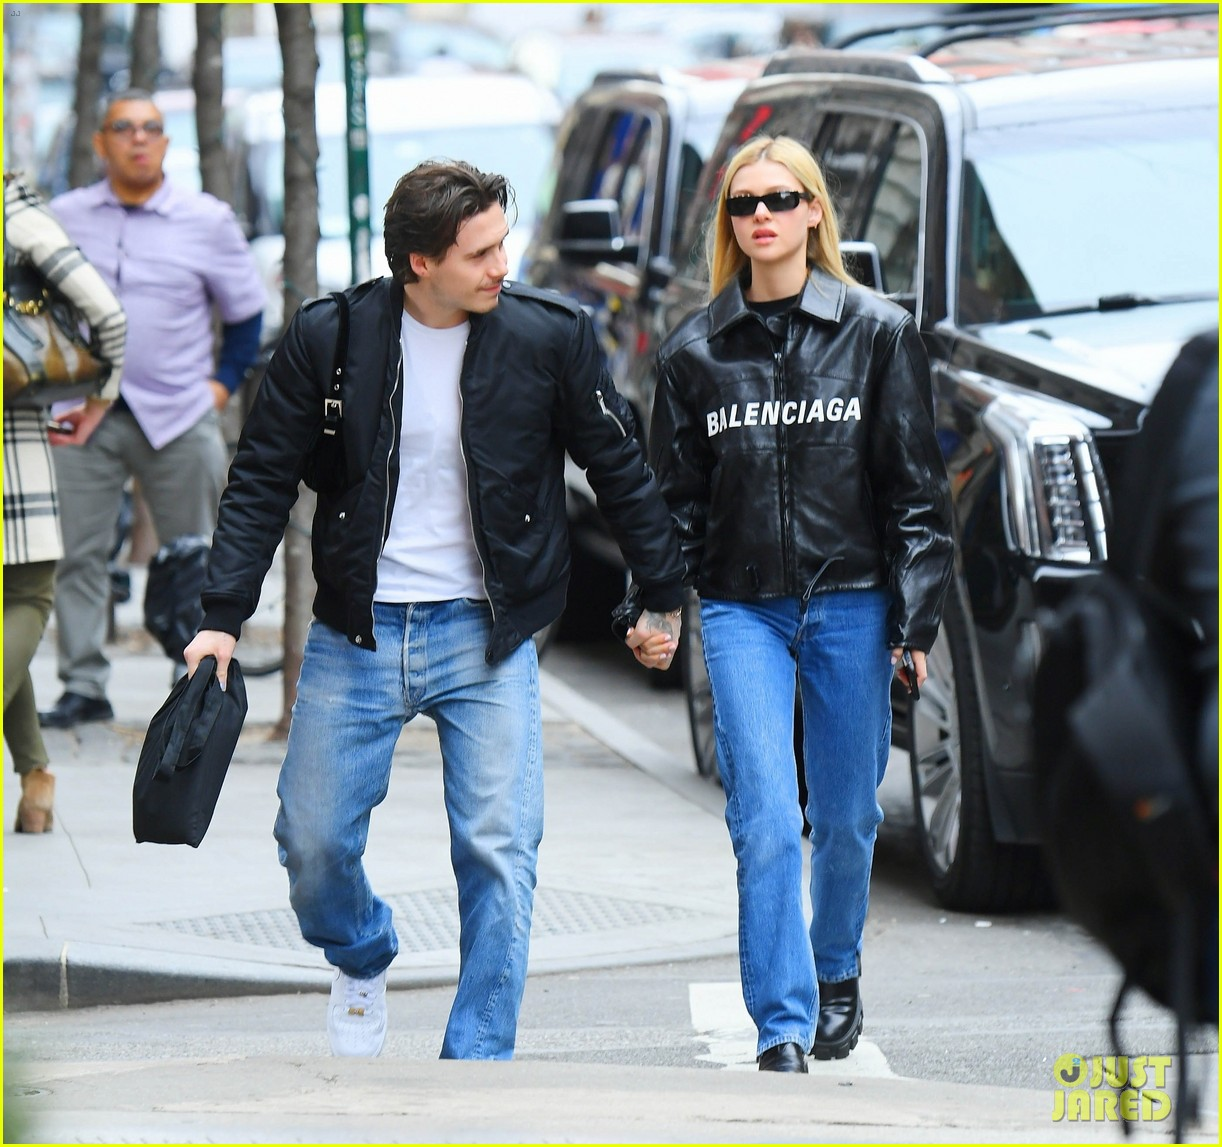 Brooklyn Beckham Is Engaged To Actress Nicola Peltz Photo 4468578 Brooklyn Beckham Nicola Peltz Pictures Just Jared